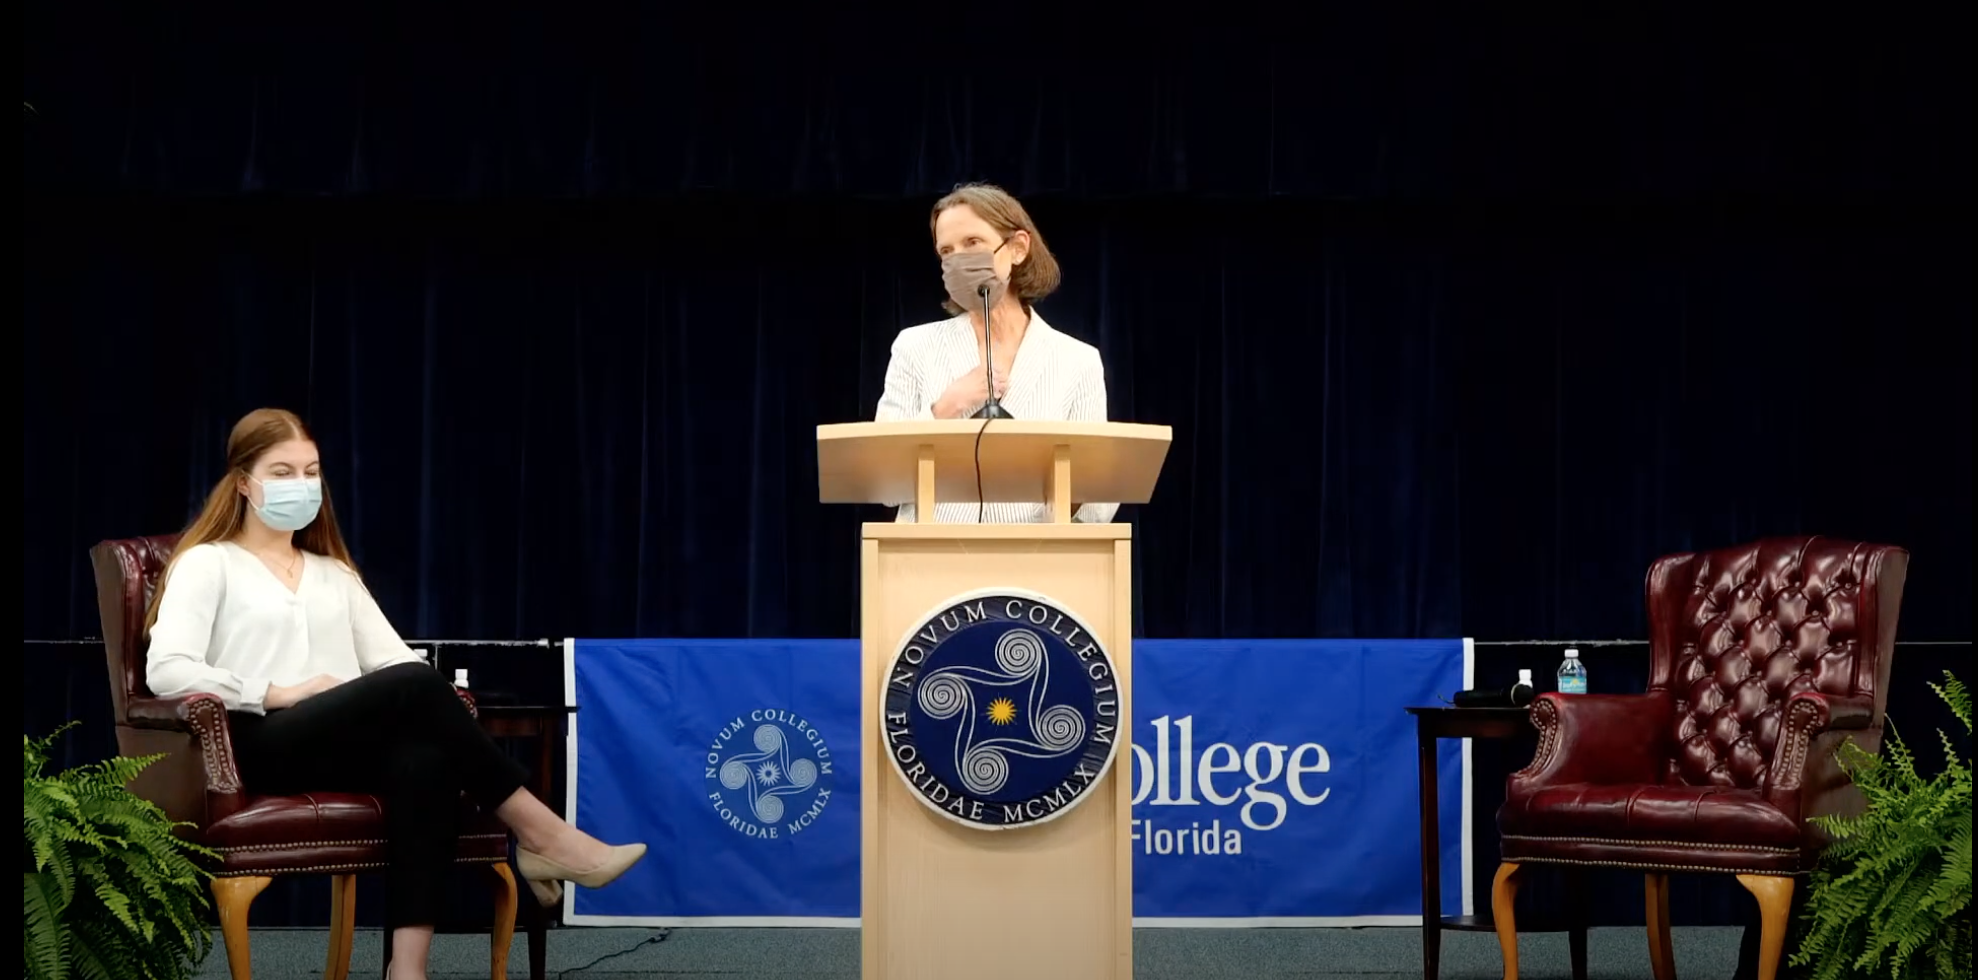 Dr. Patricia Okker named as New College's first female president